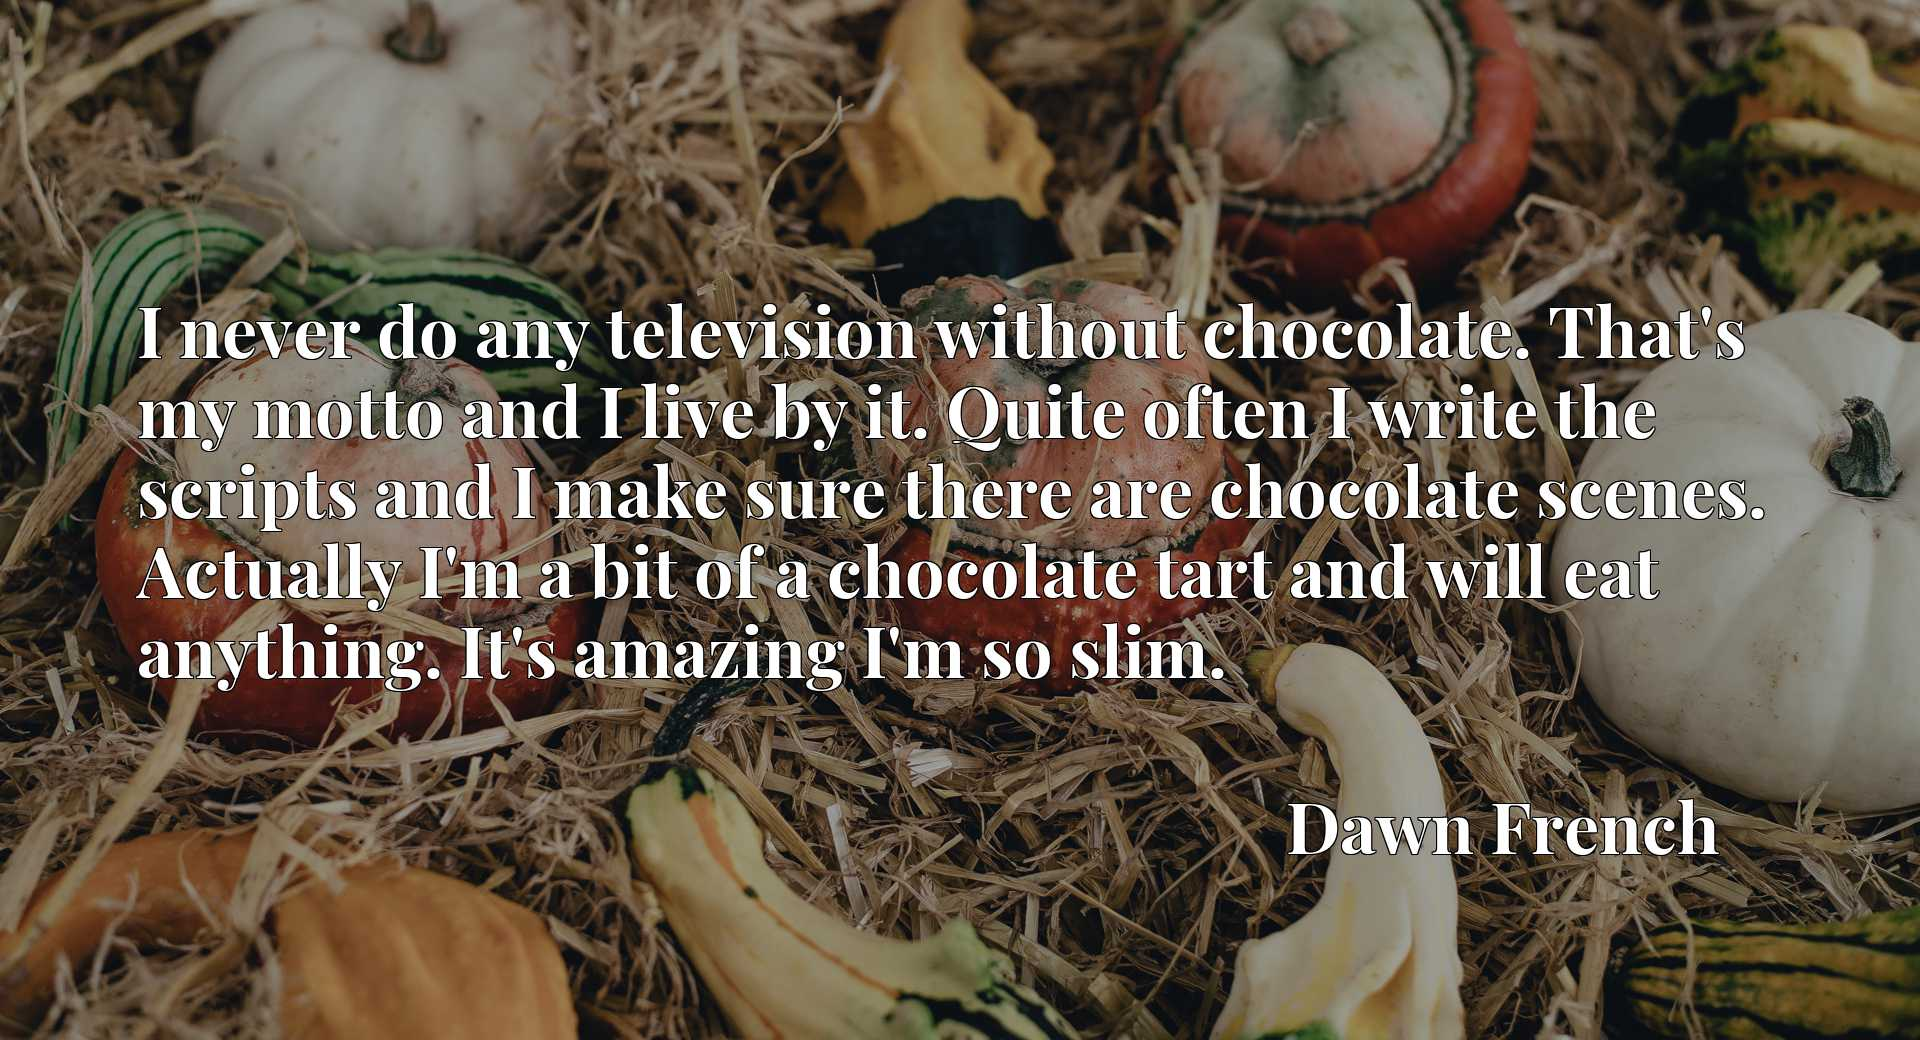 I never do any television without chocolate. That's my motto and I live by it. Quite often I write the scripts and I make sure there are chocolate scenes. Actually I'm a bit of a chocolate tart and will eat anything. It's amazing I'm so slim.